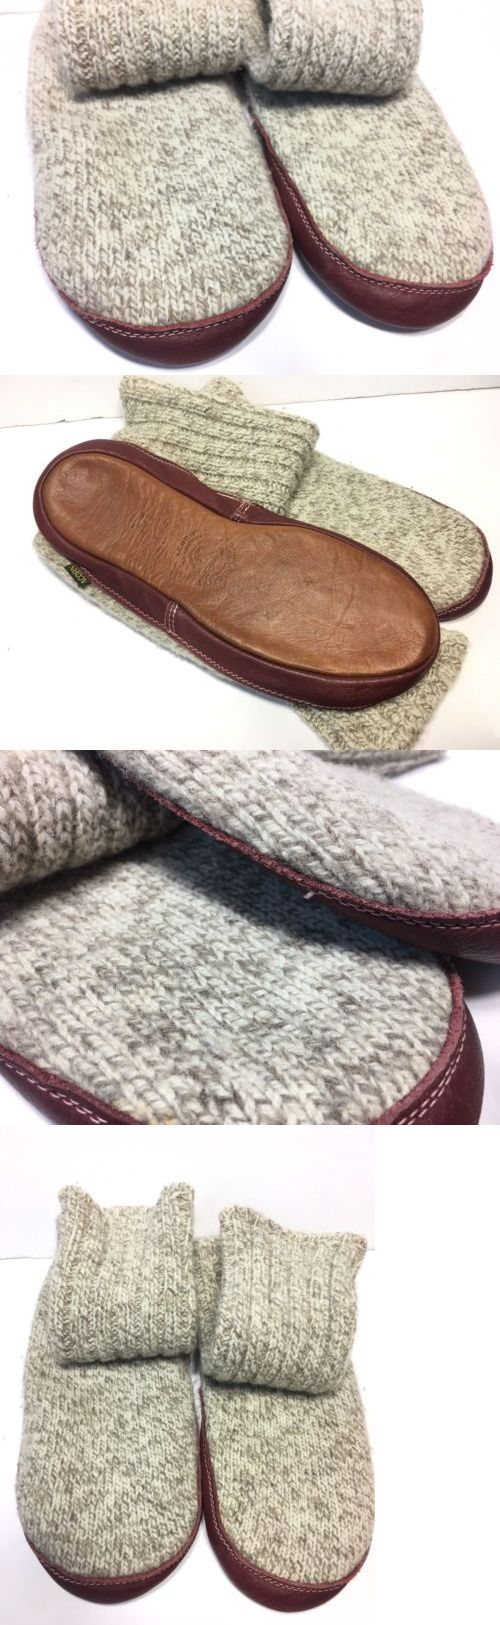 Slippers 163550: Acorn Slippers Socks Mens M (9-10)Cable Knit Wool Leather Womens (10.5-11.5) New -> BUY IT NOW ONLY: $31.96 on eBay!